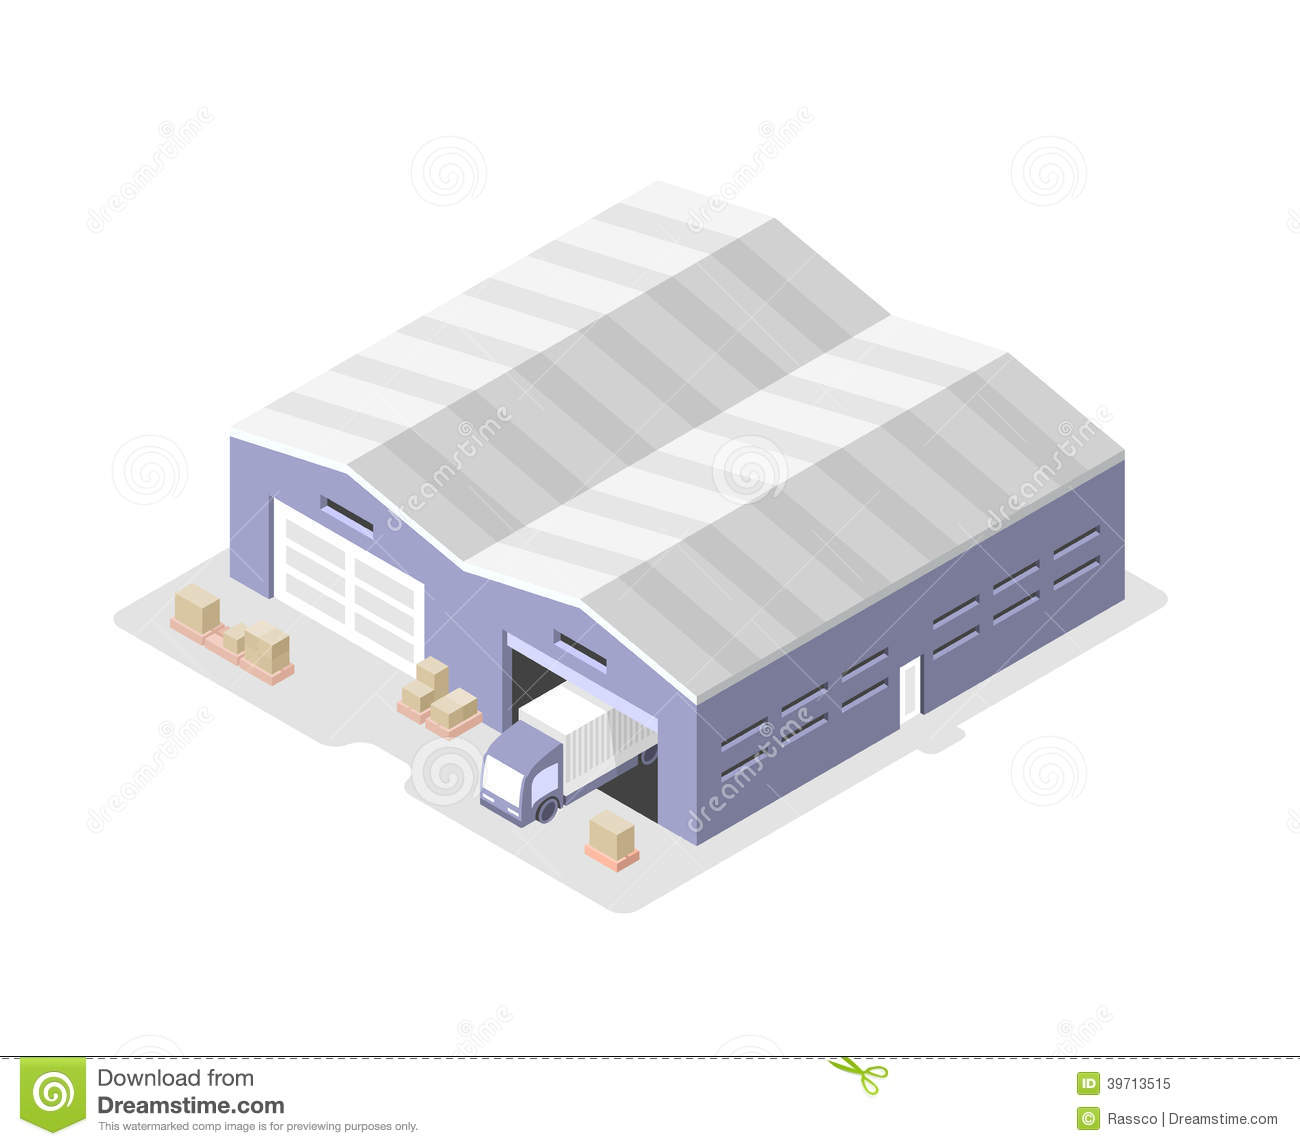 Distribution center clipart » Clipart Station.